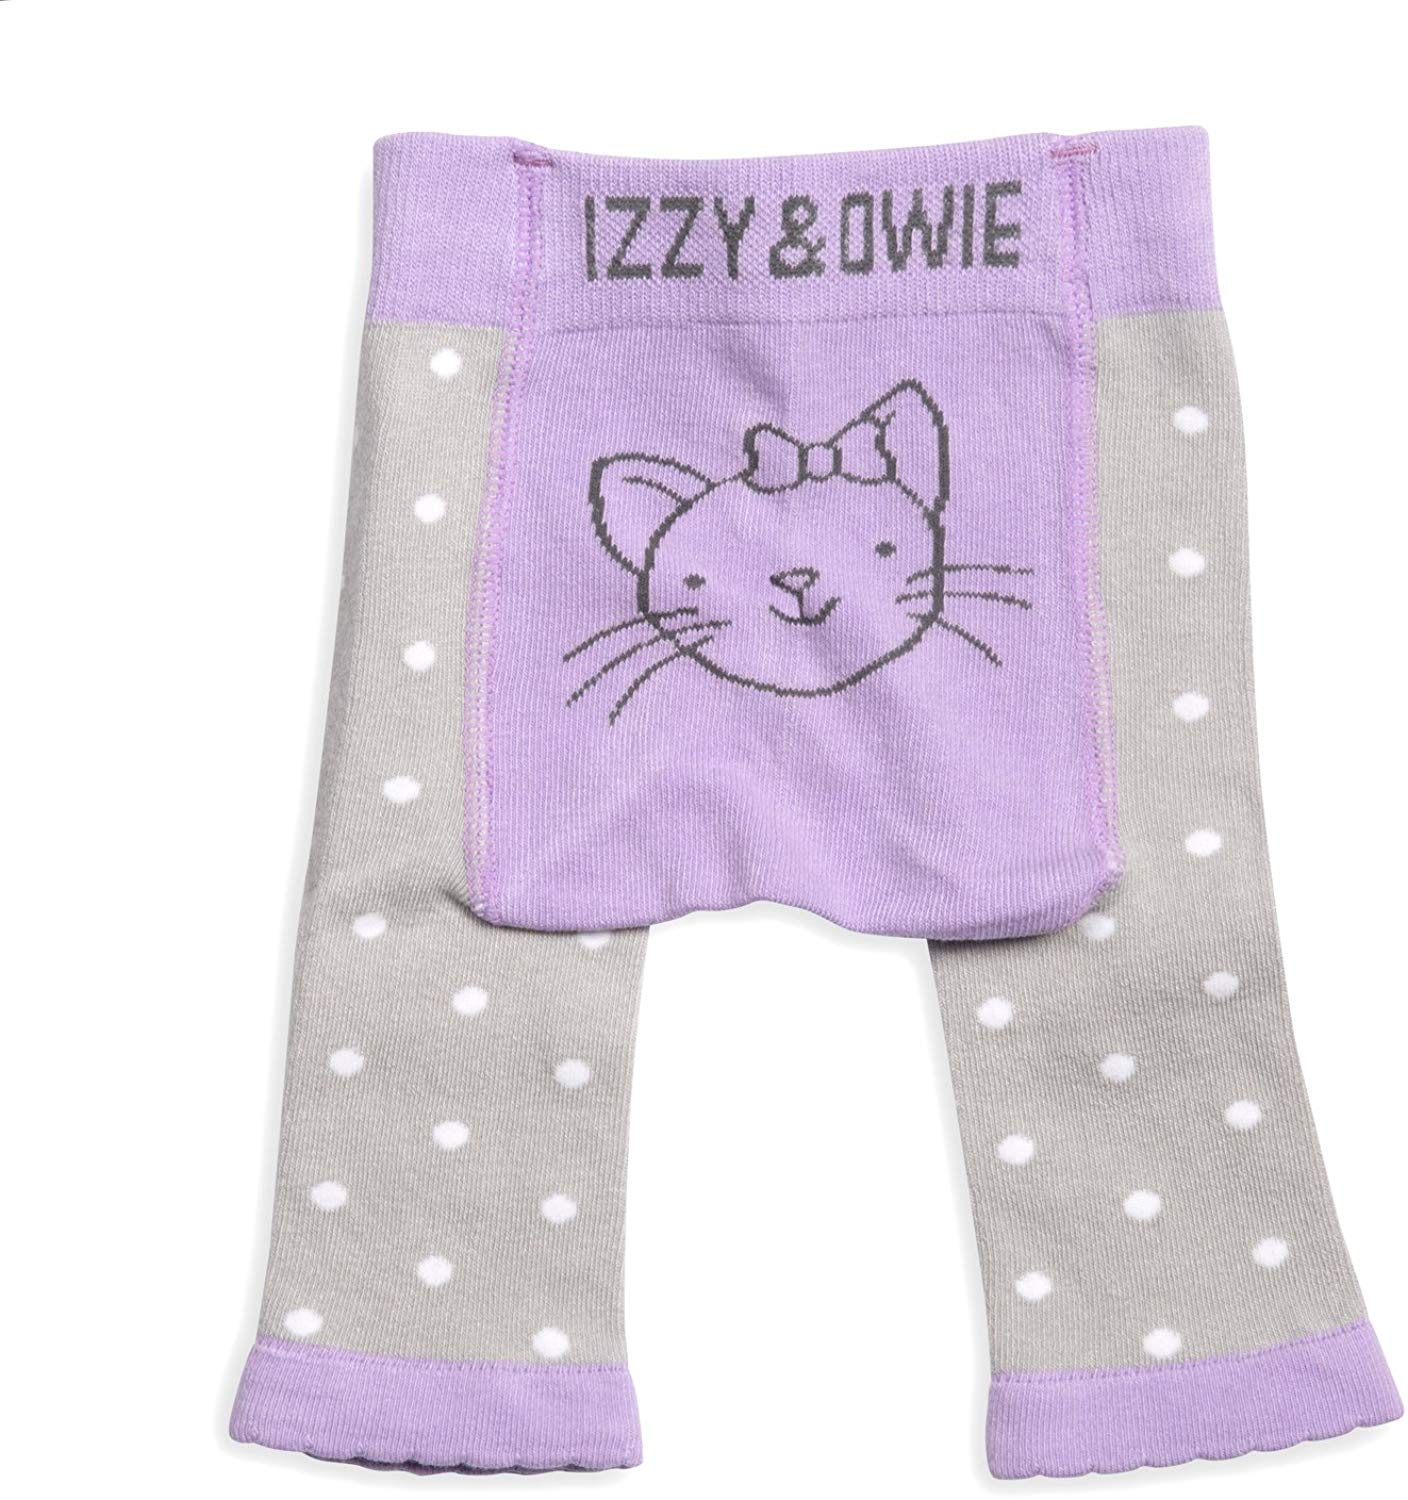 Winsummer Autumn Cotton Girl Tights Baby Pantyhose Toddlers Cat Print Stocking Fashion Knitted Legging Pants Socks